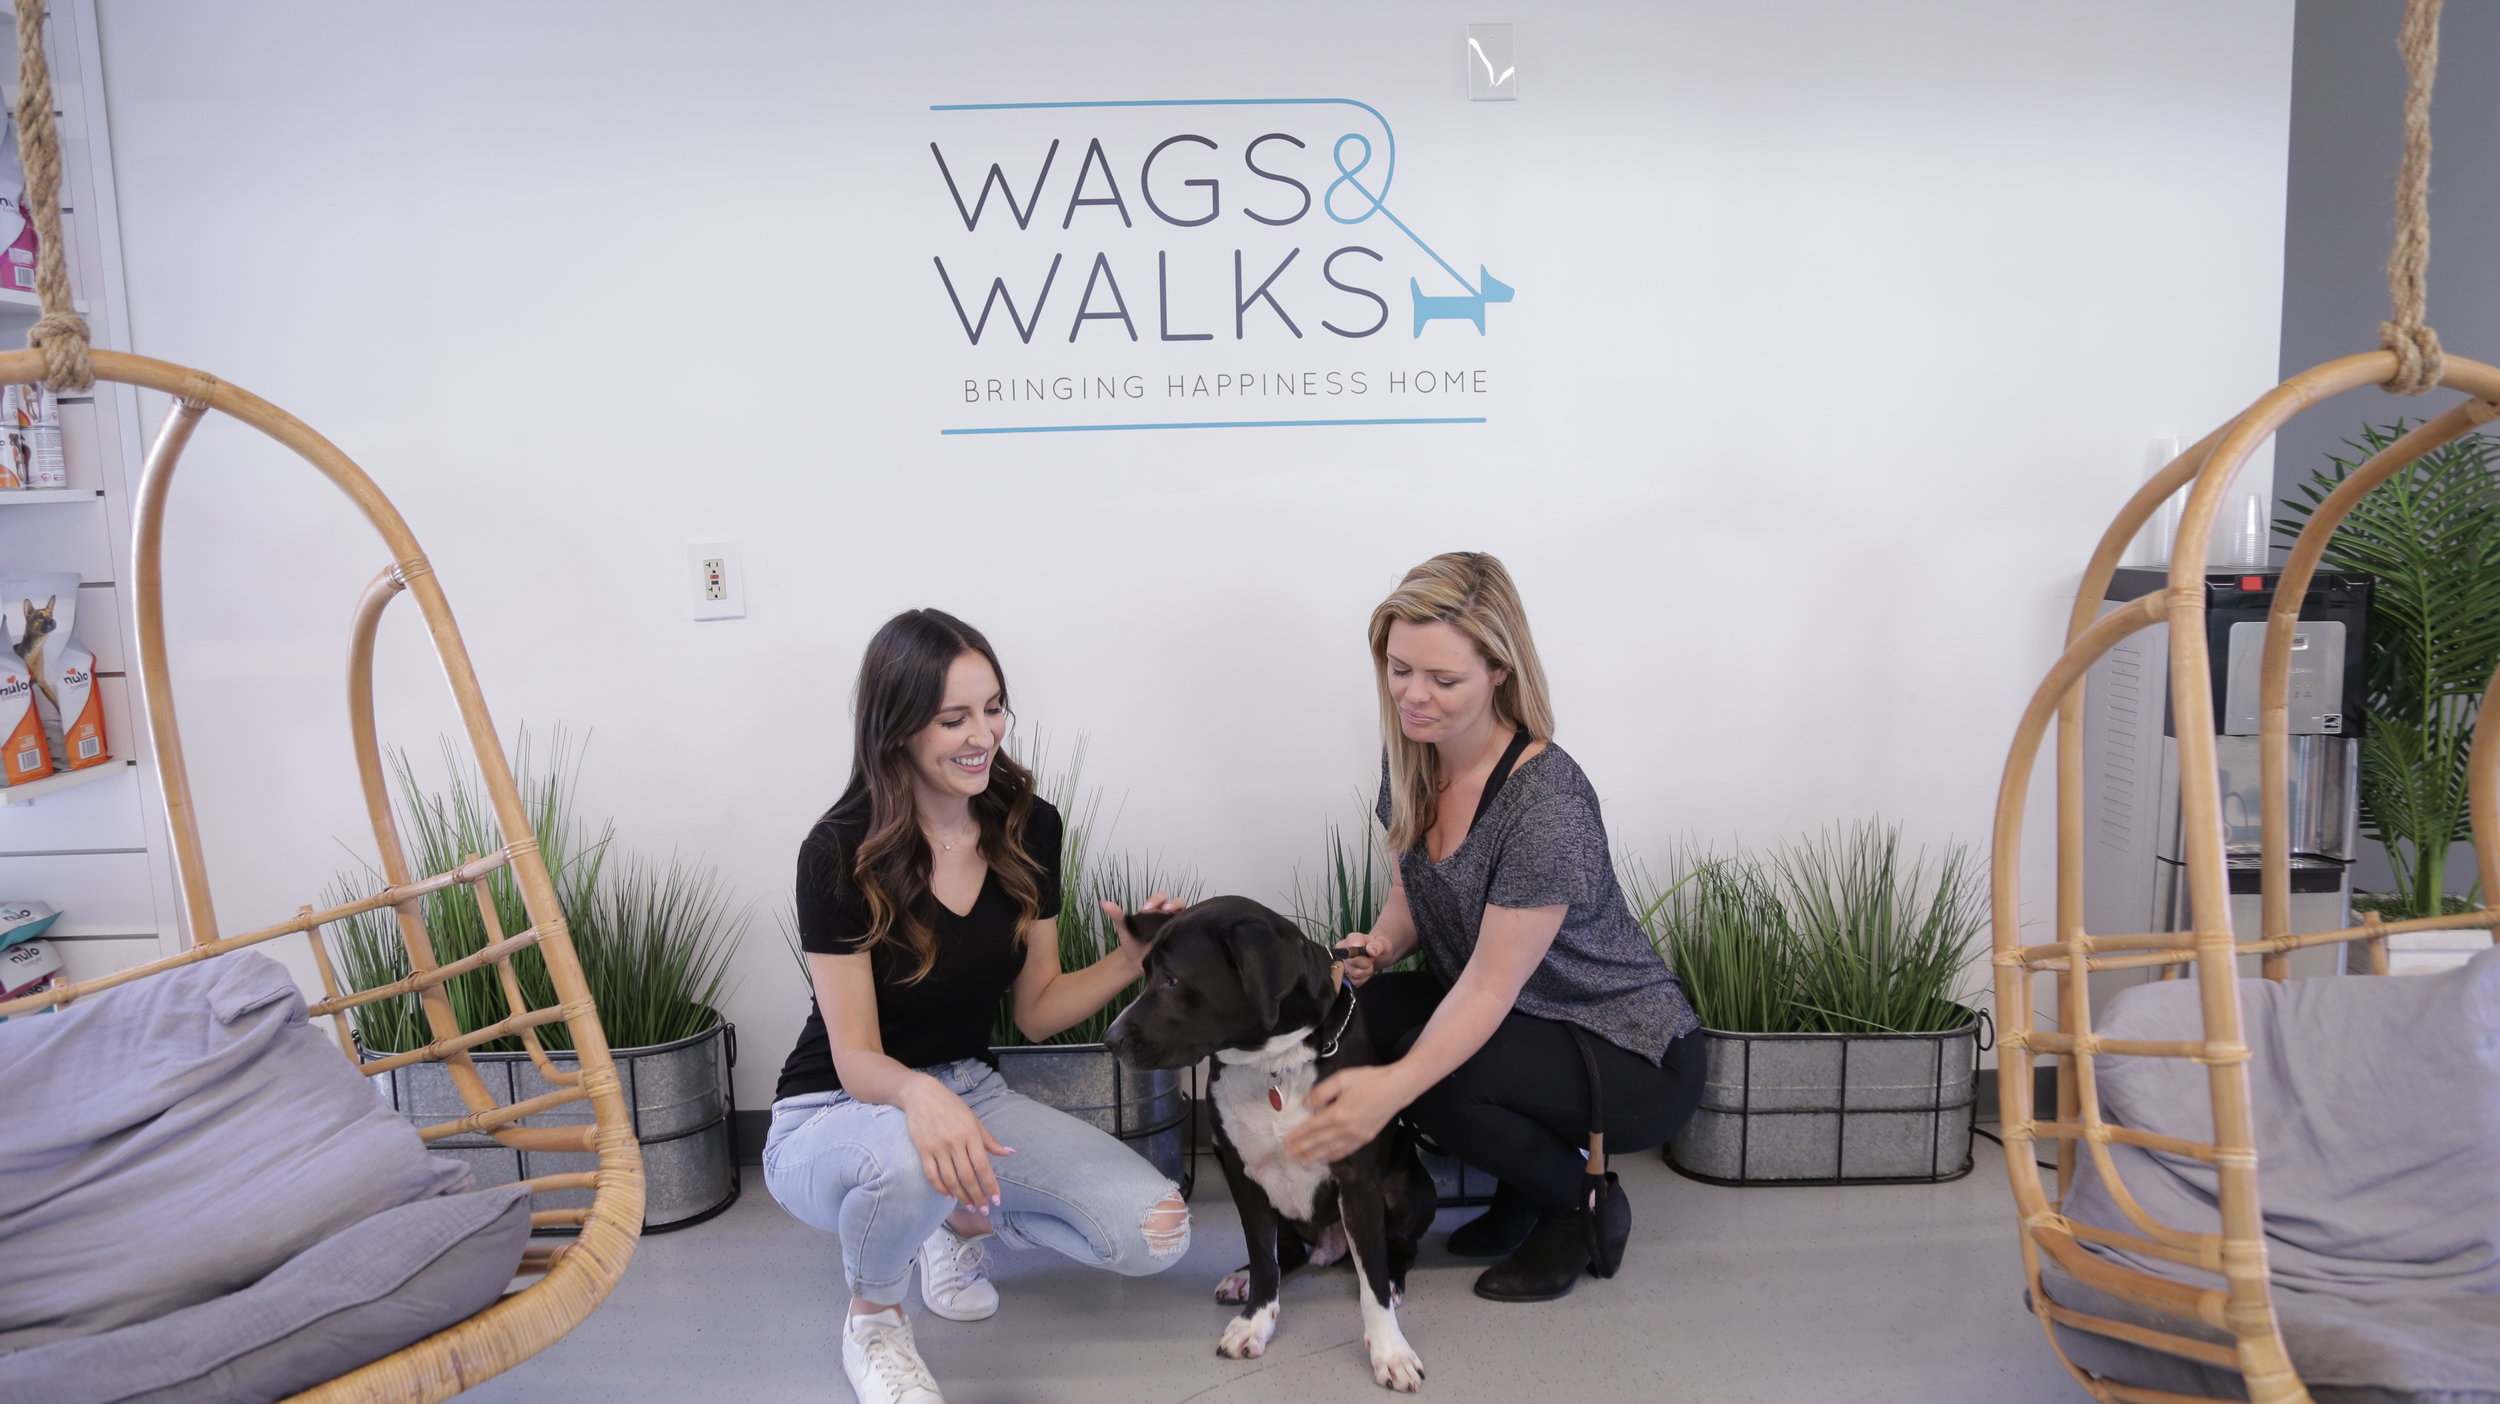 Esther Lane and Joanna Duff pose with Oreo, a dog featured in the video who is still up for adoption through Wag & Walks.